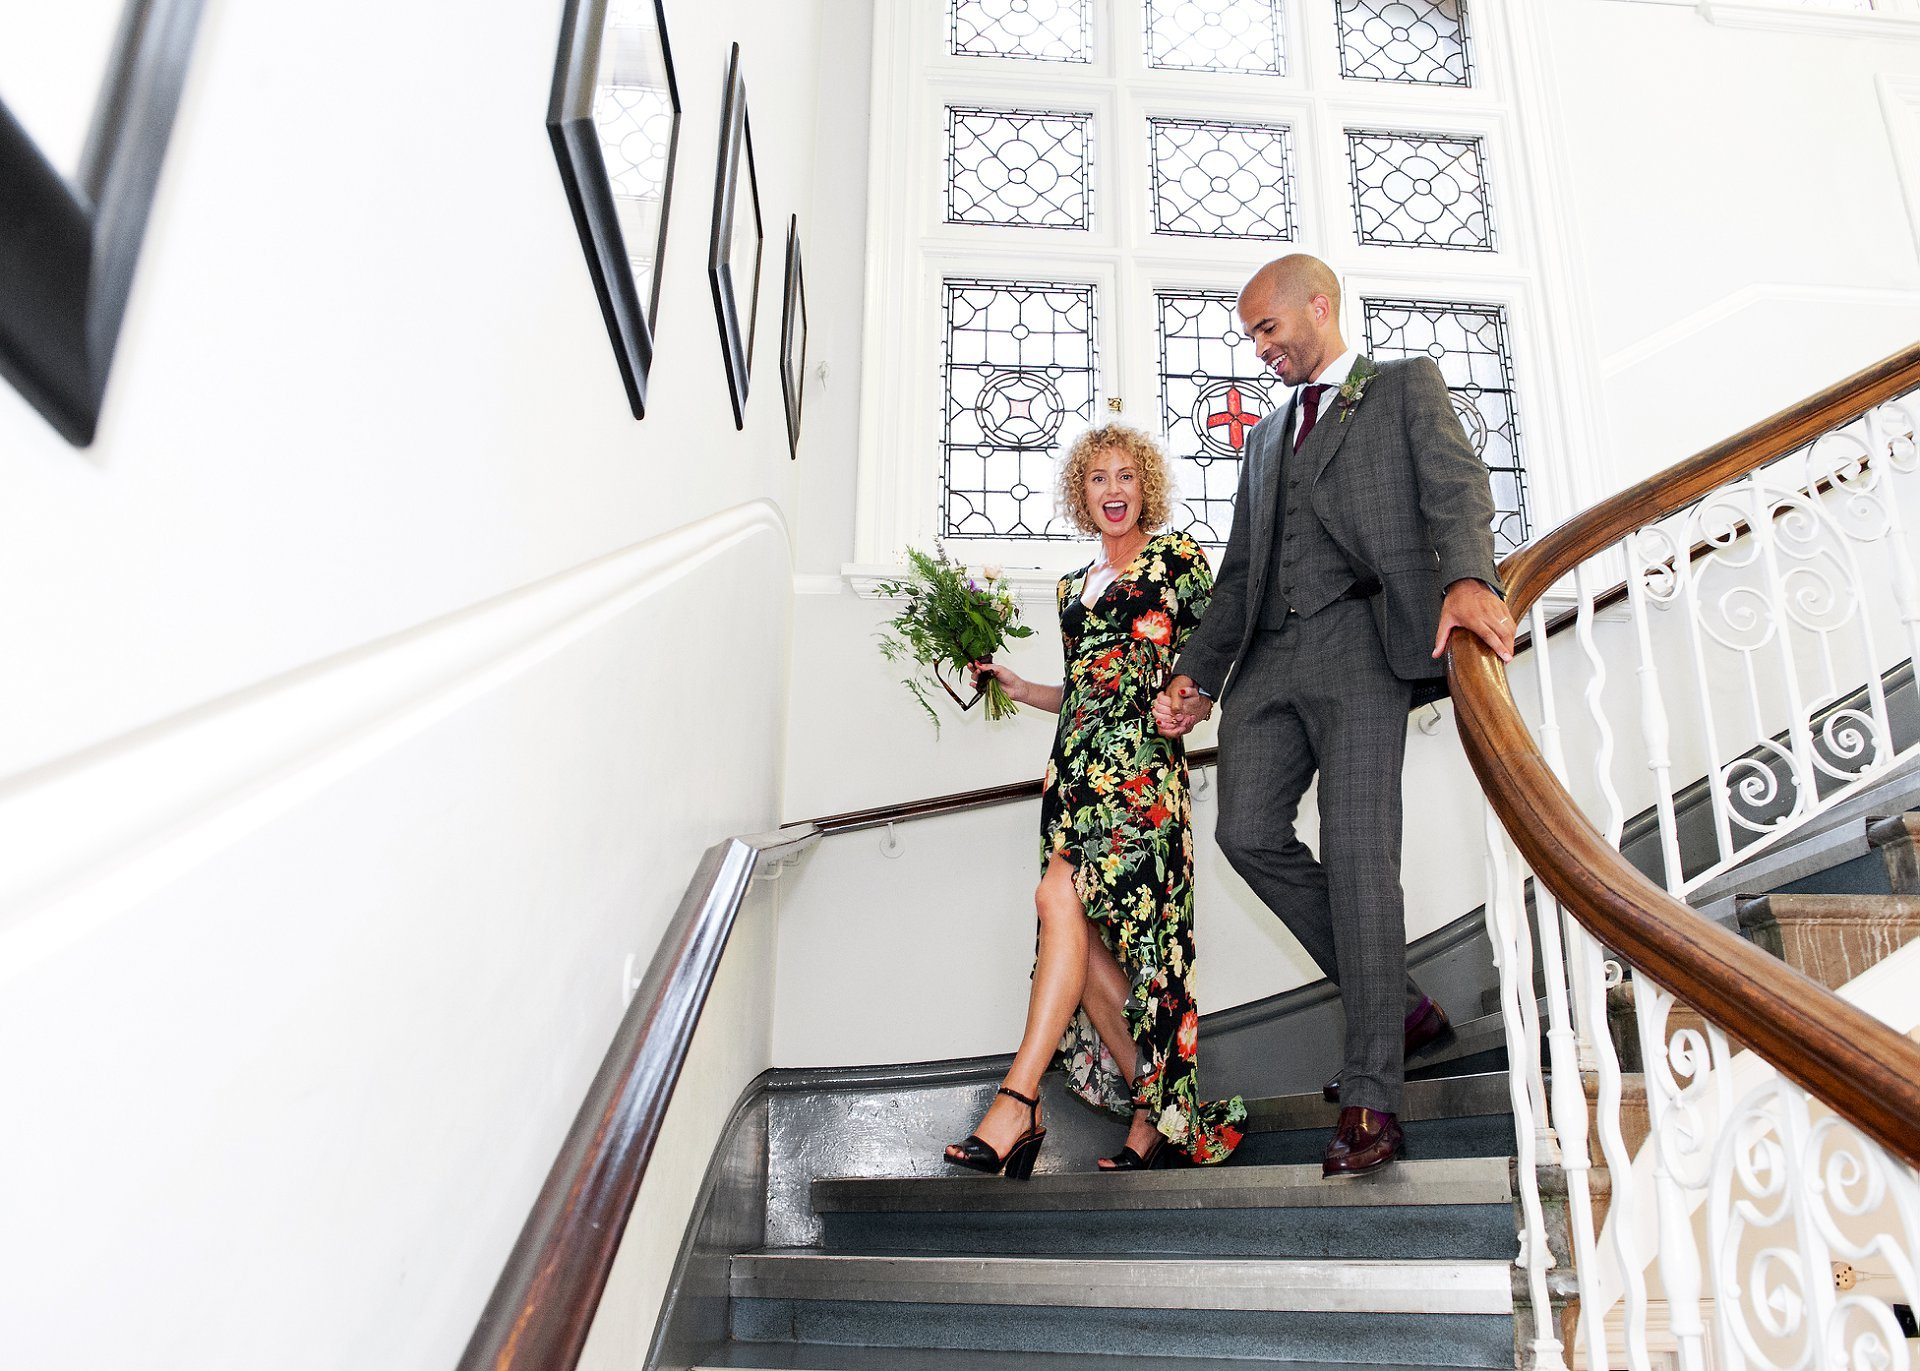 Bride & groom walking down the stairs at Mayfair Library on South Audley Street